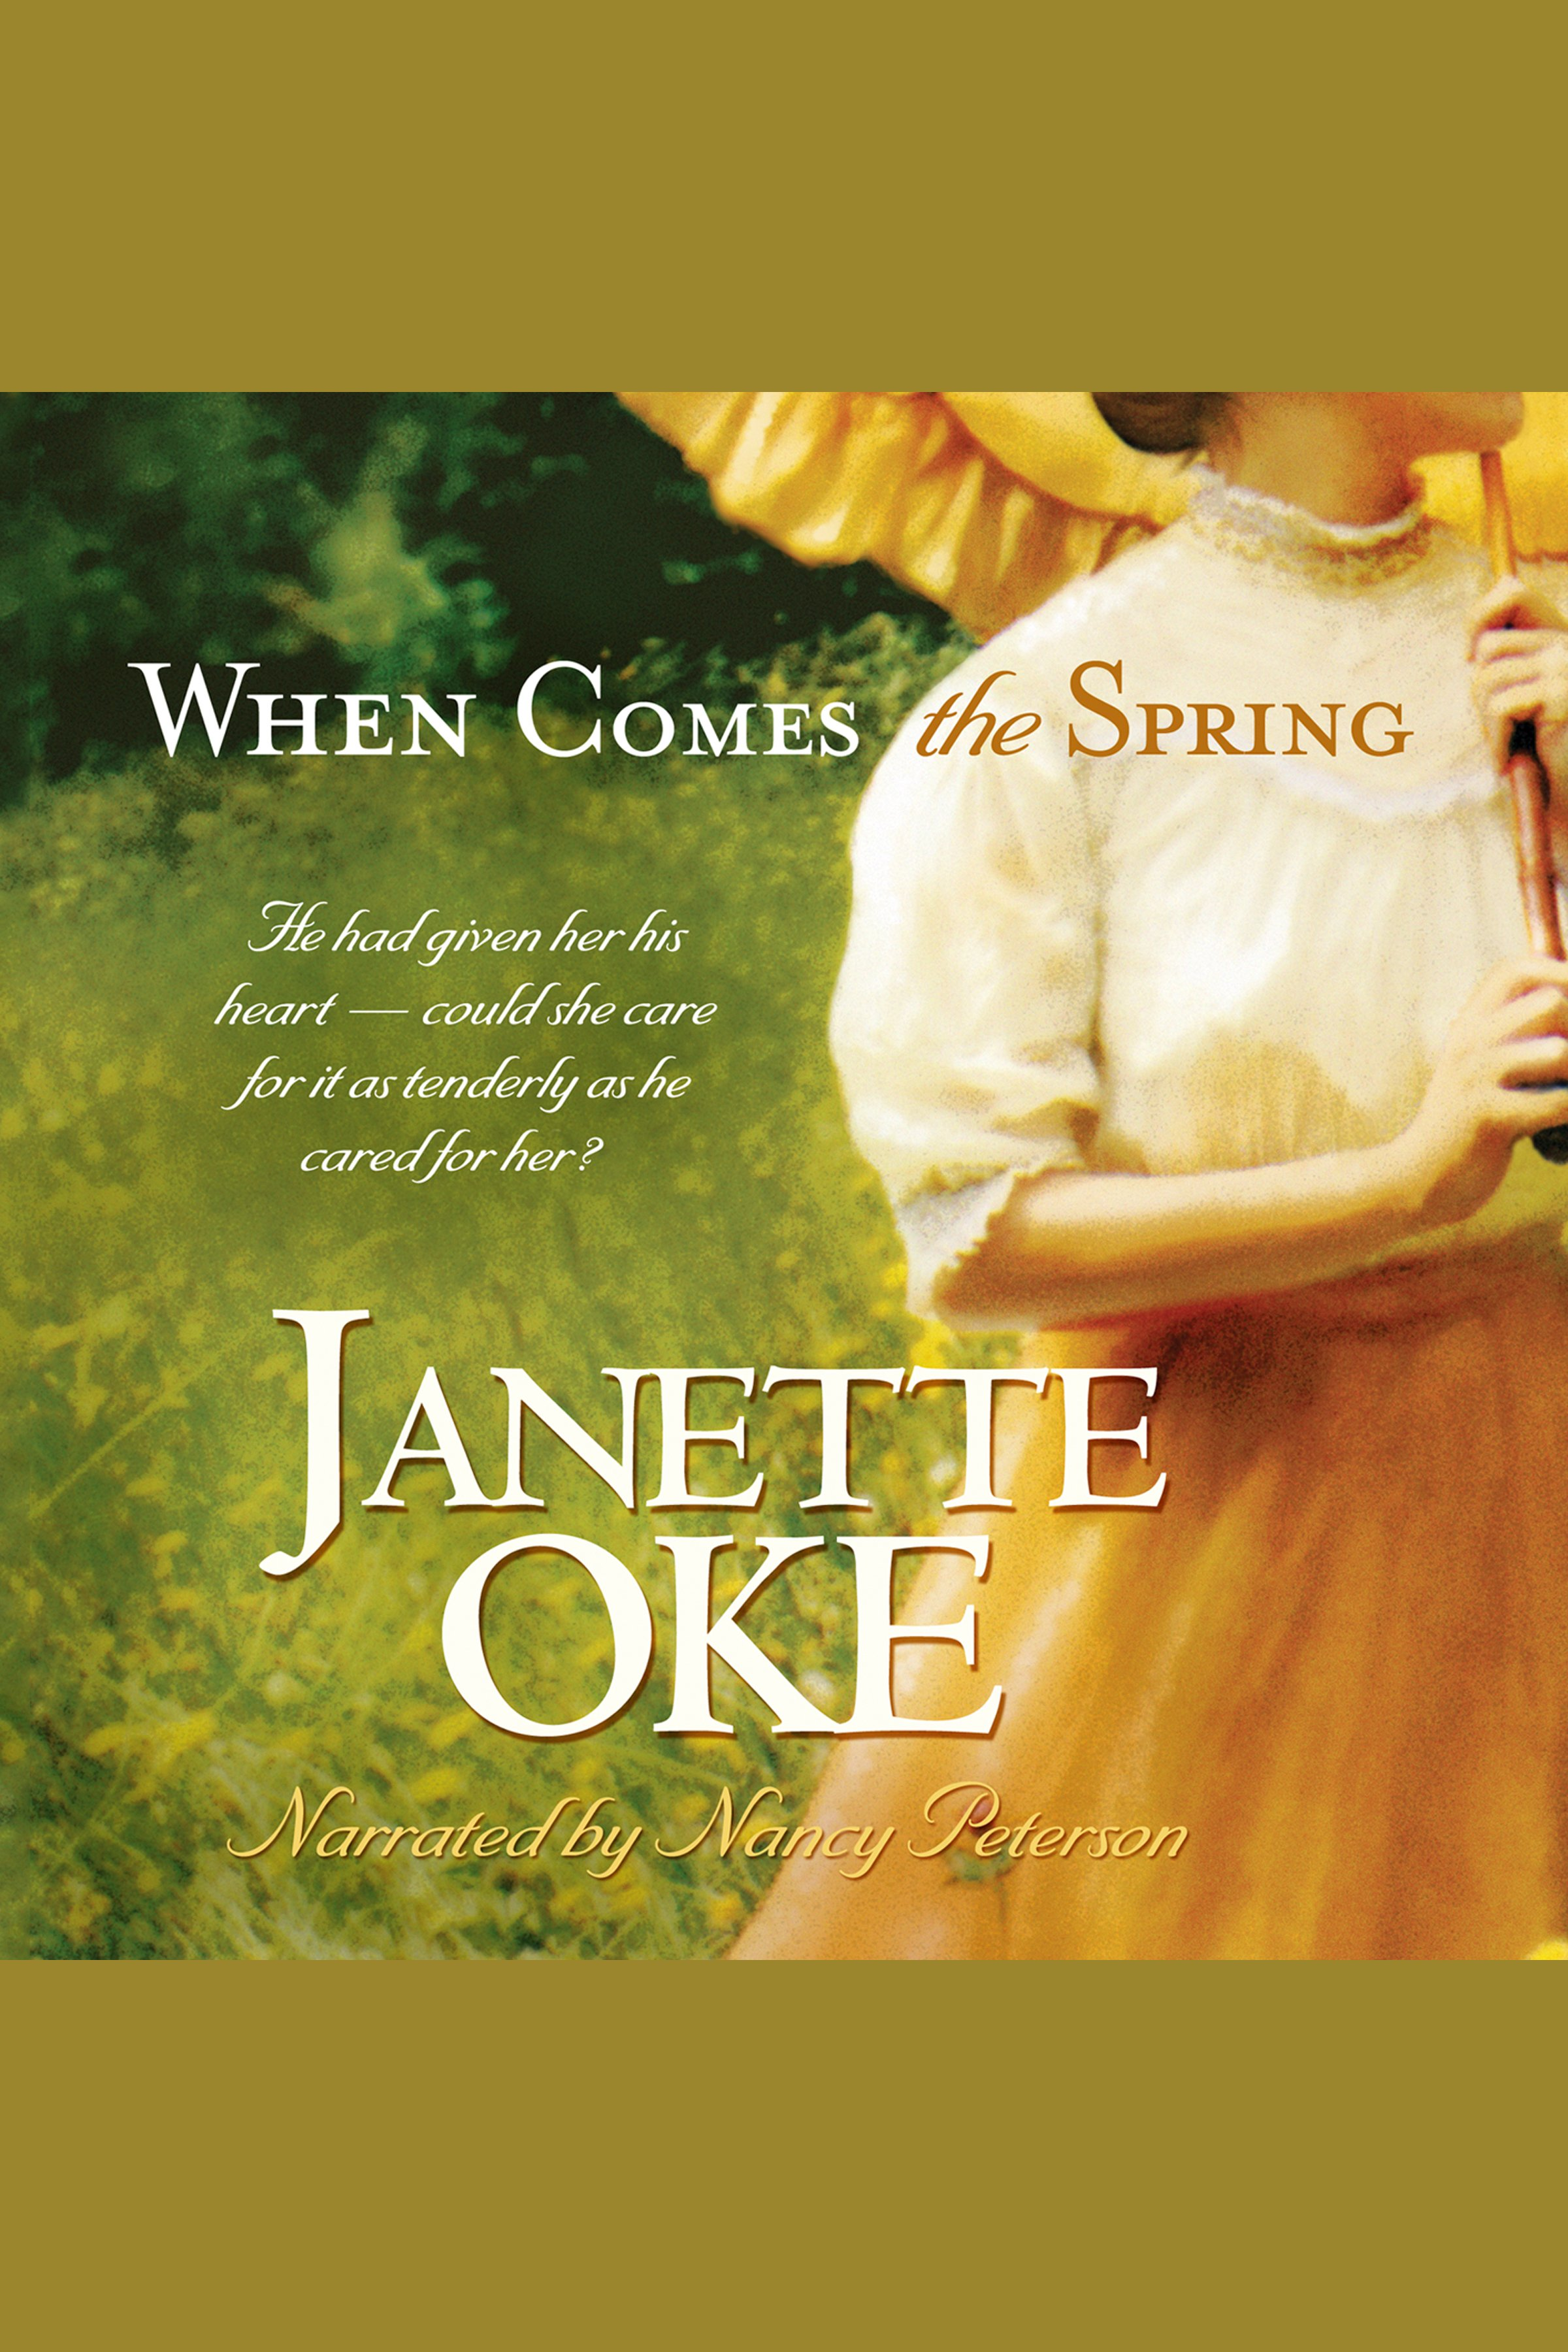 When Comes the Spring cover image